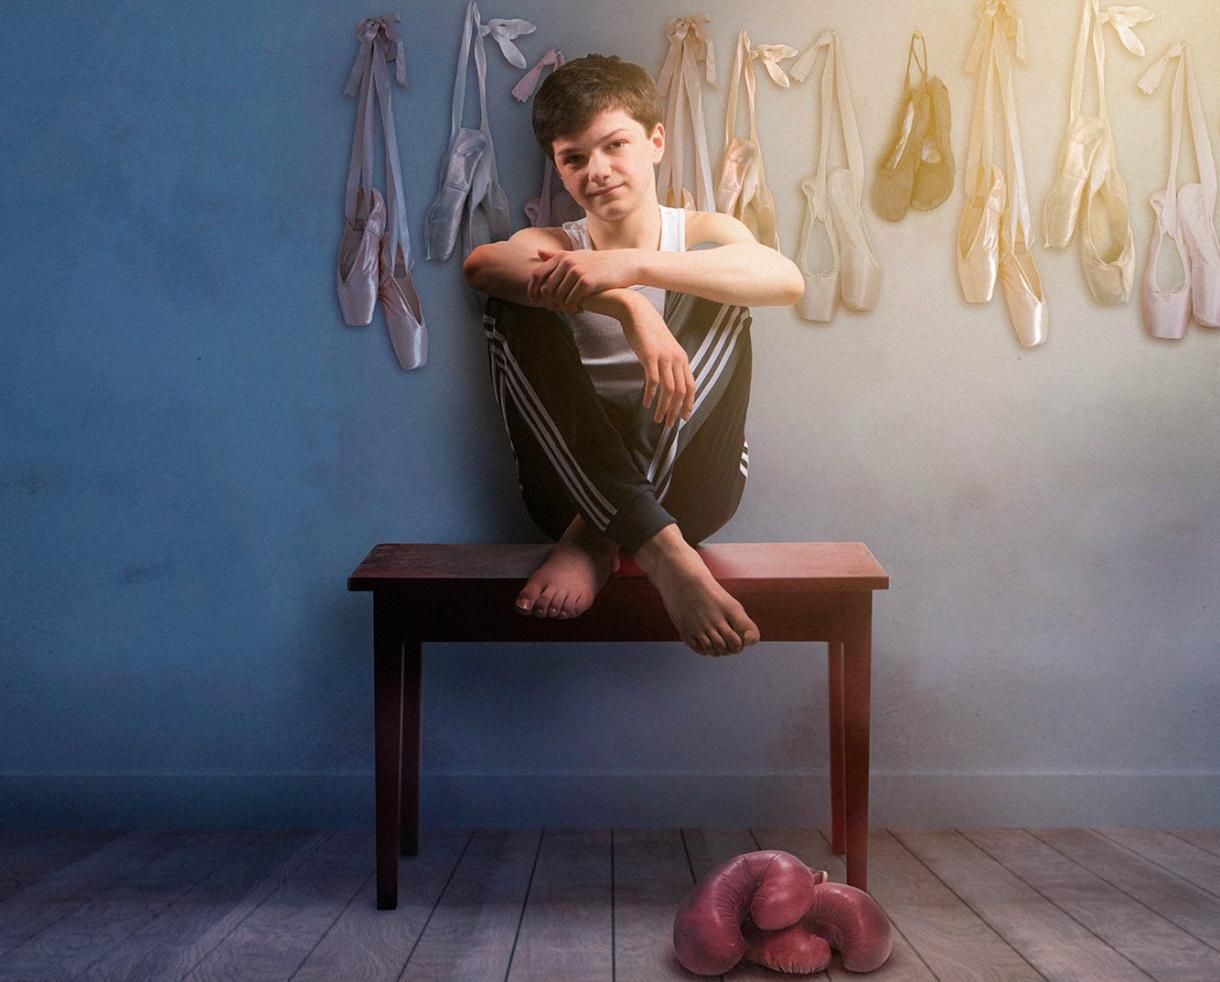 20% Off Tickets to Billy Elliot the Musical at Signature Theatre